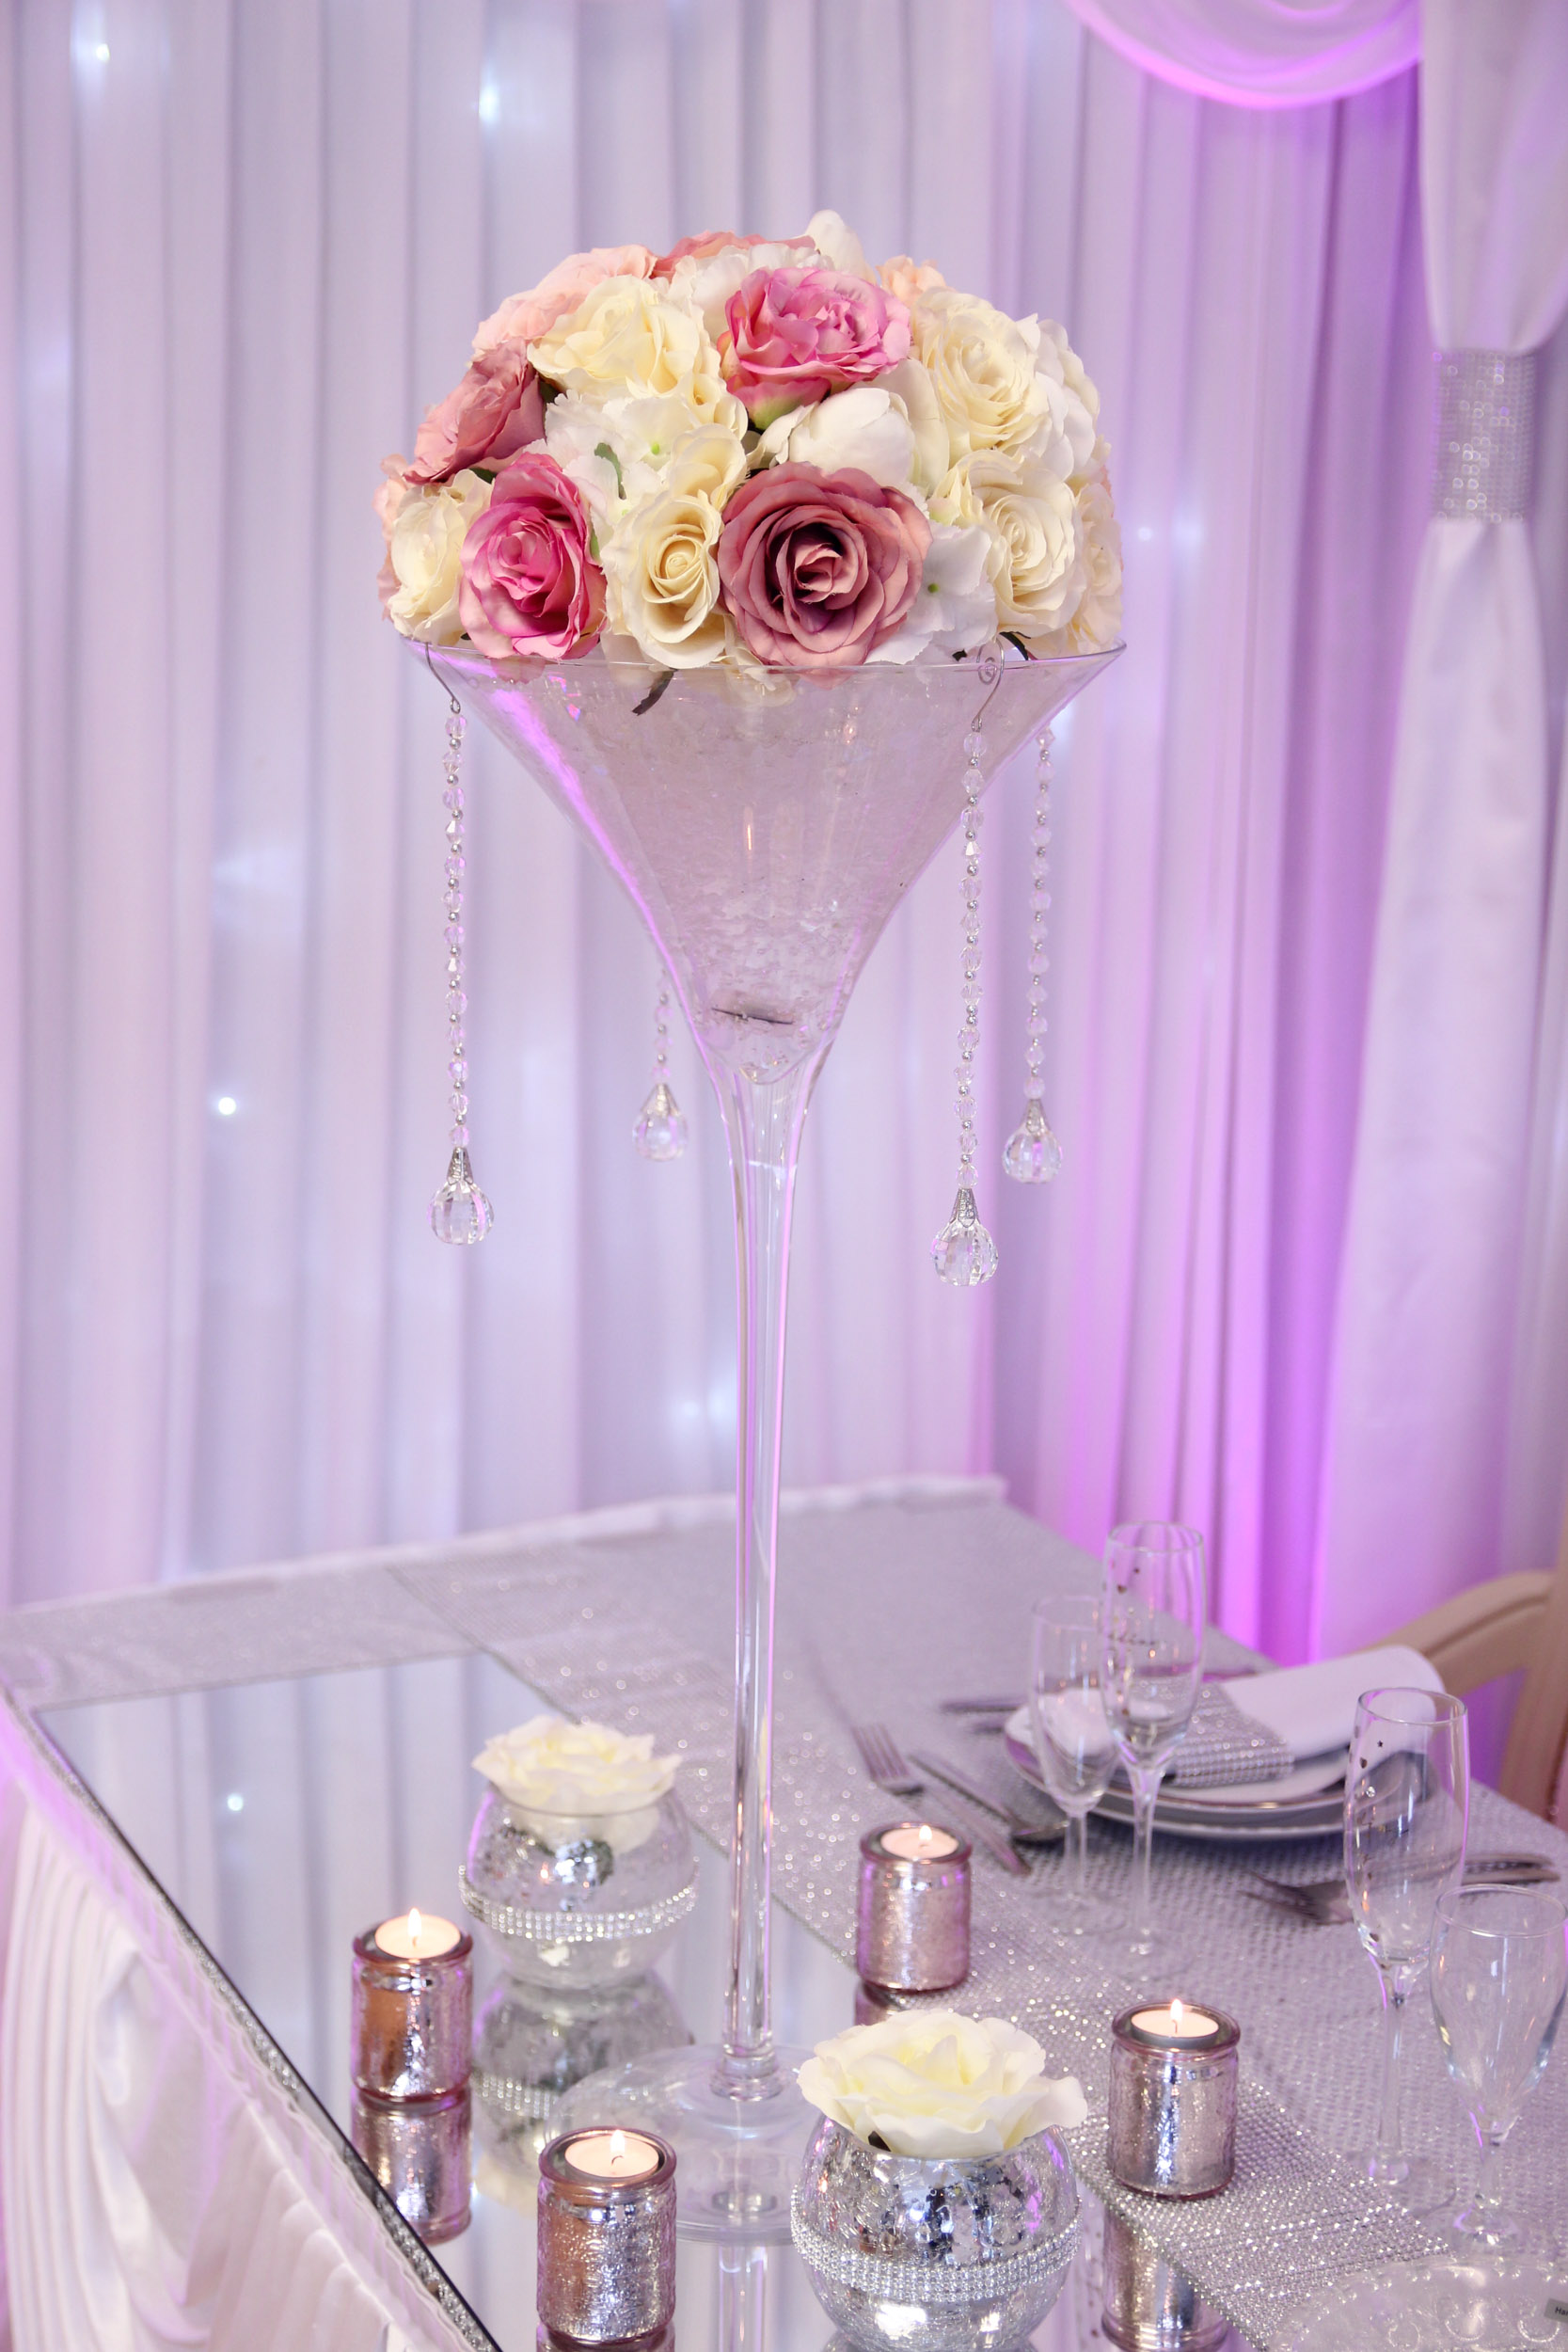 hanging chair clear car covers amazon martini vase with rose dome - beyond expectations weddings & events